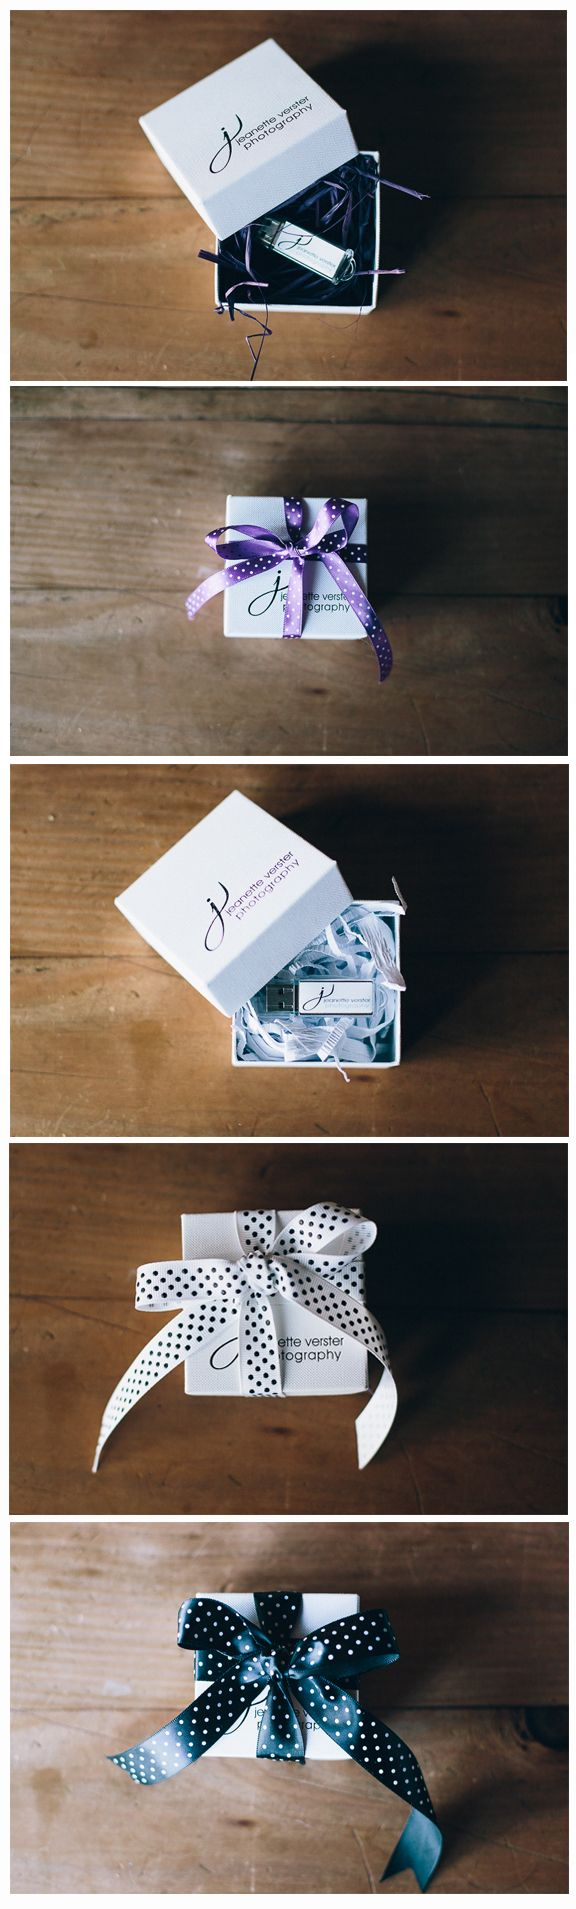 New packaging for USBs | Jeanette Verster Photography - Wedding and Lifestyle Photographer Johannesburg